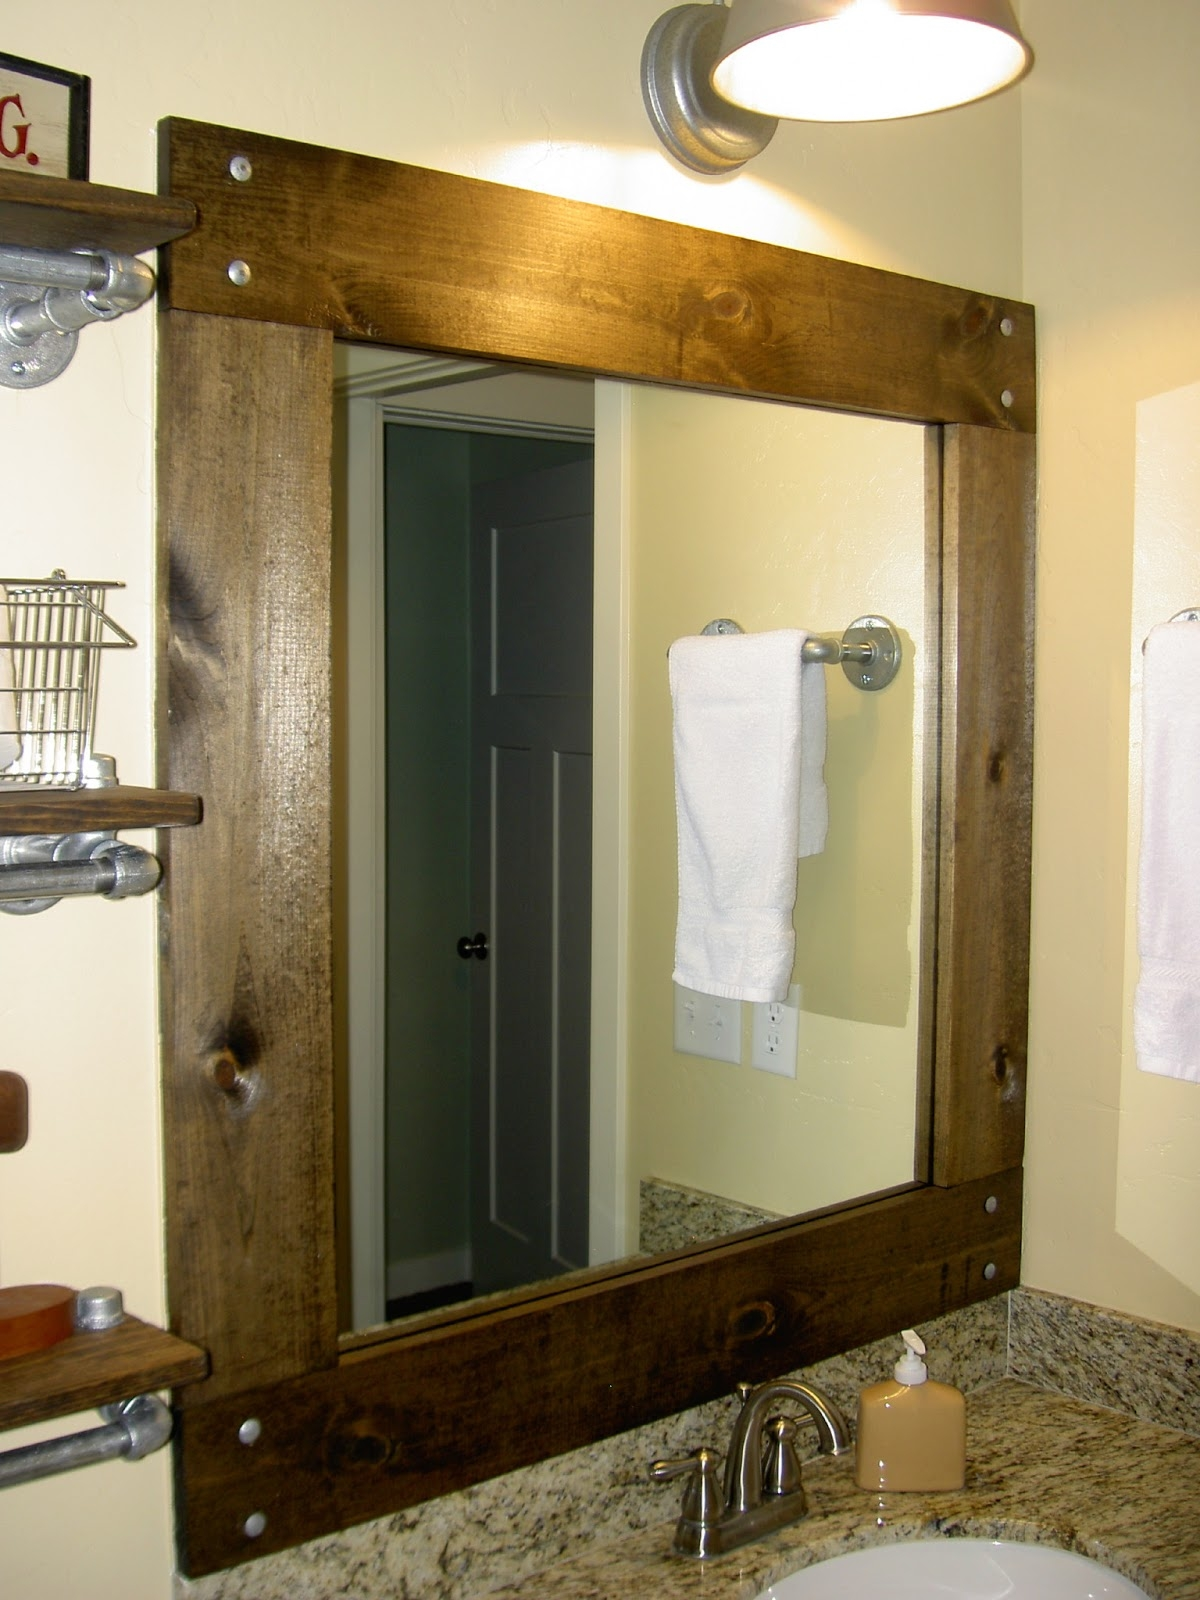 Permalink to White Framed Bathroom Mirrors With Shelf